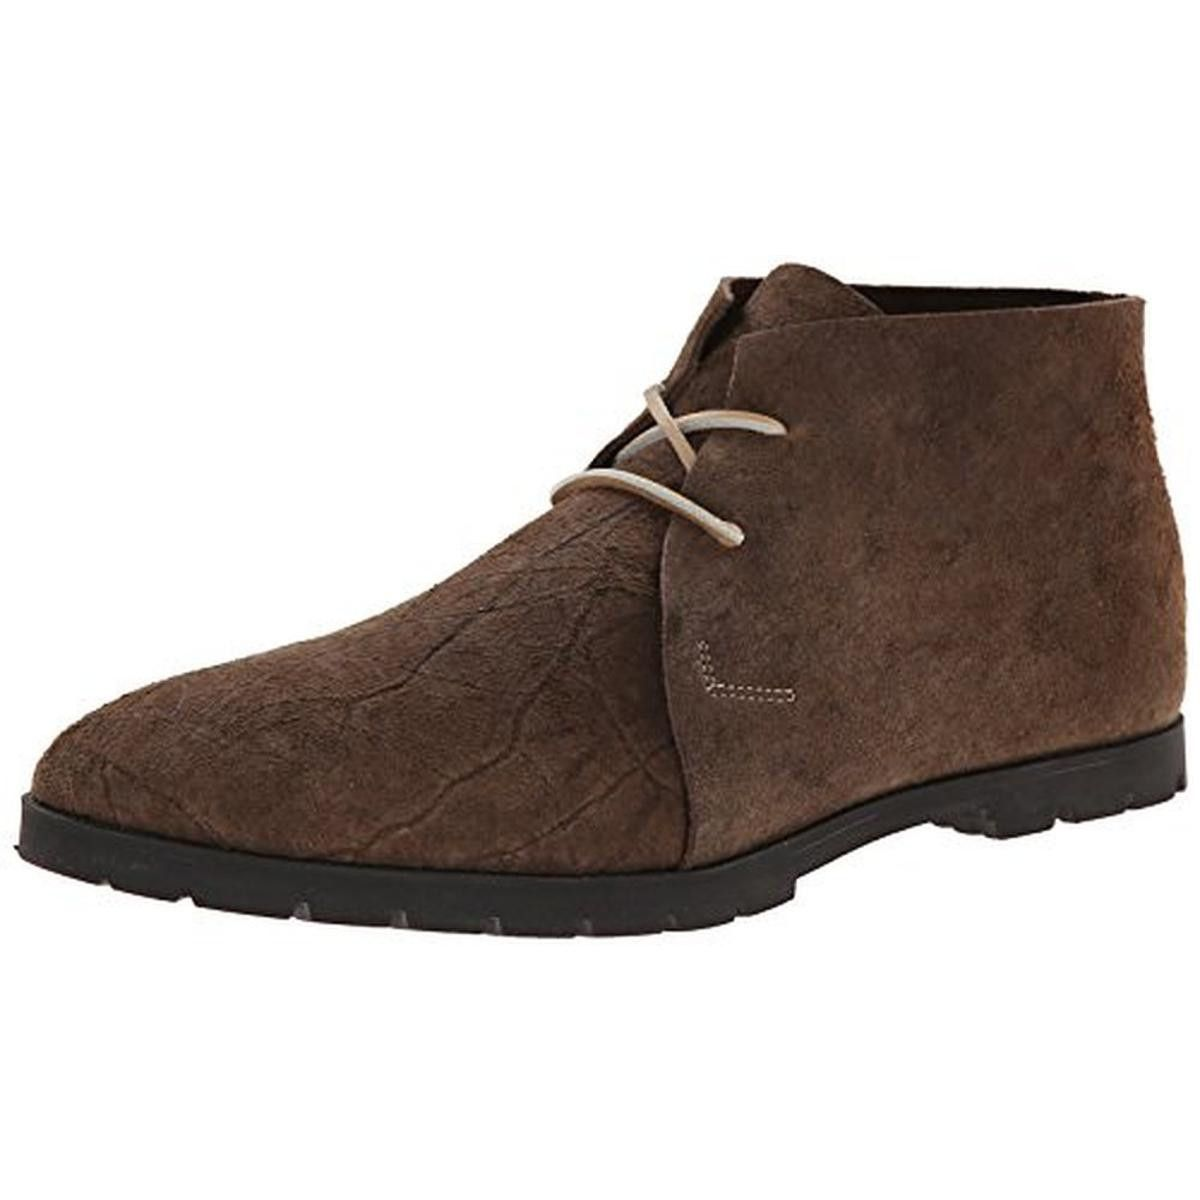 Mens Lane Suede Distressed Chukka Boots   Products and Boots